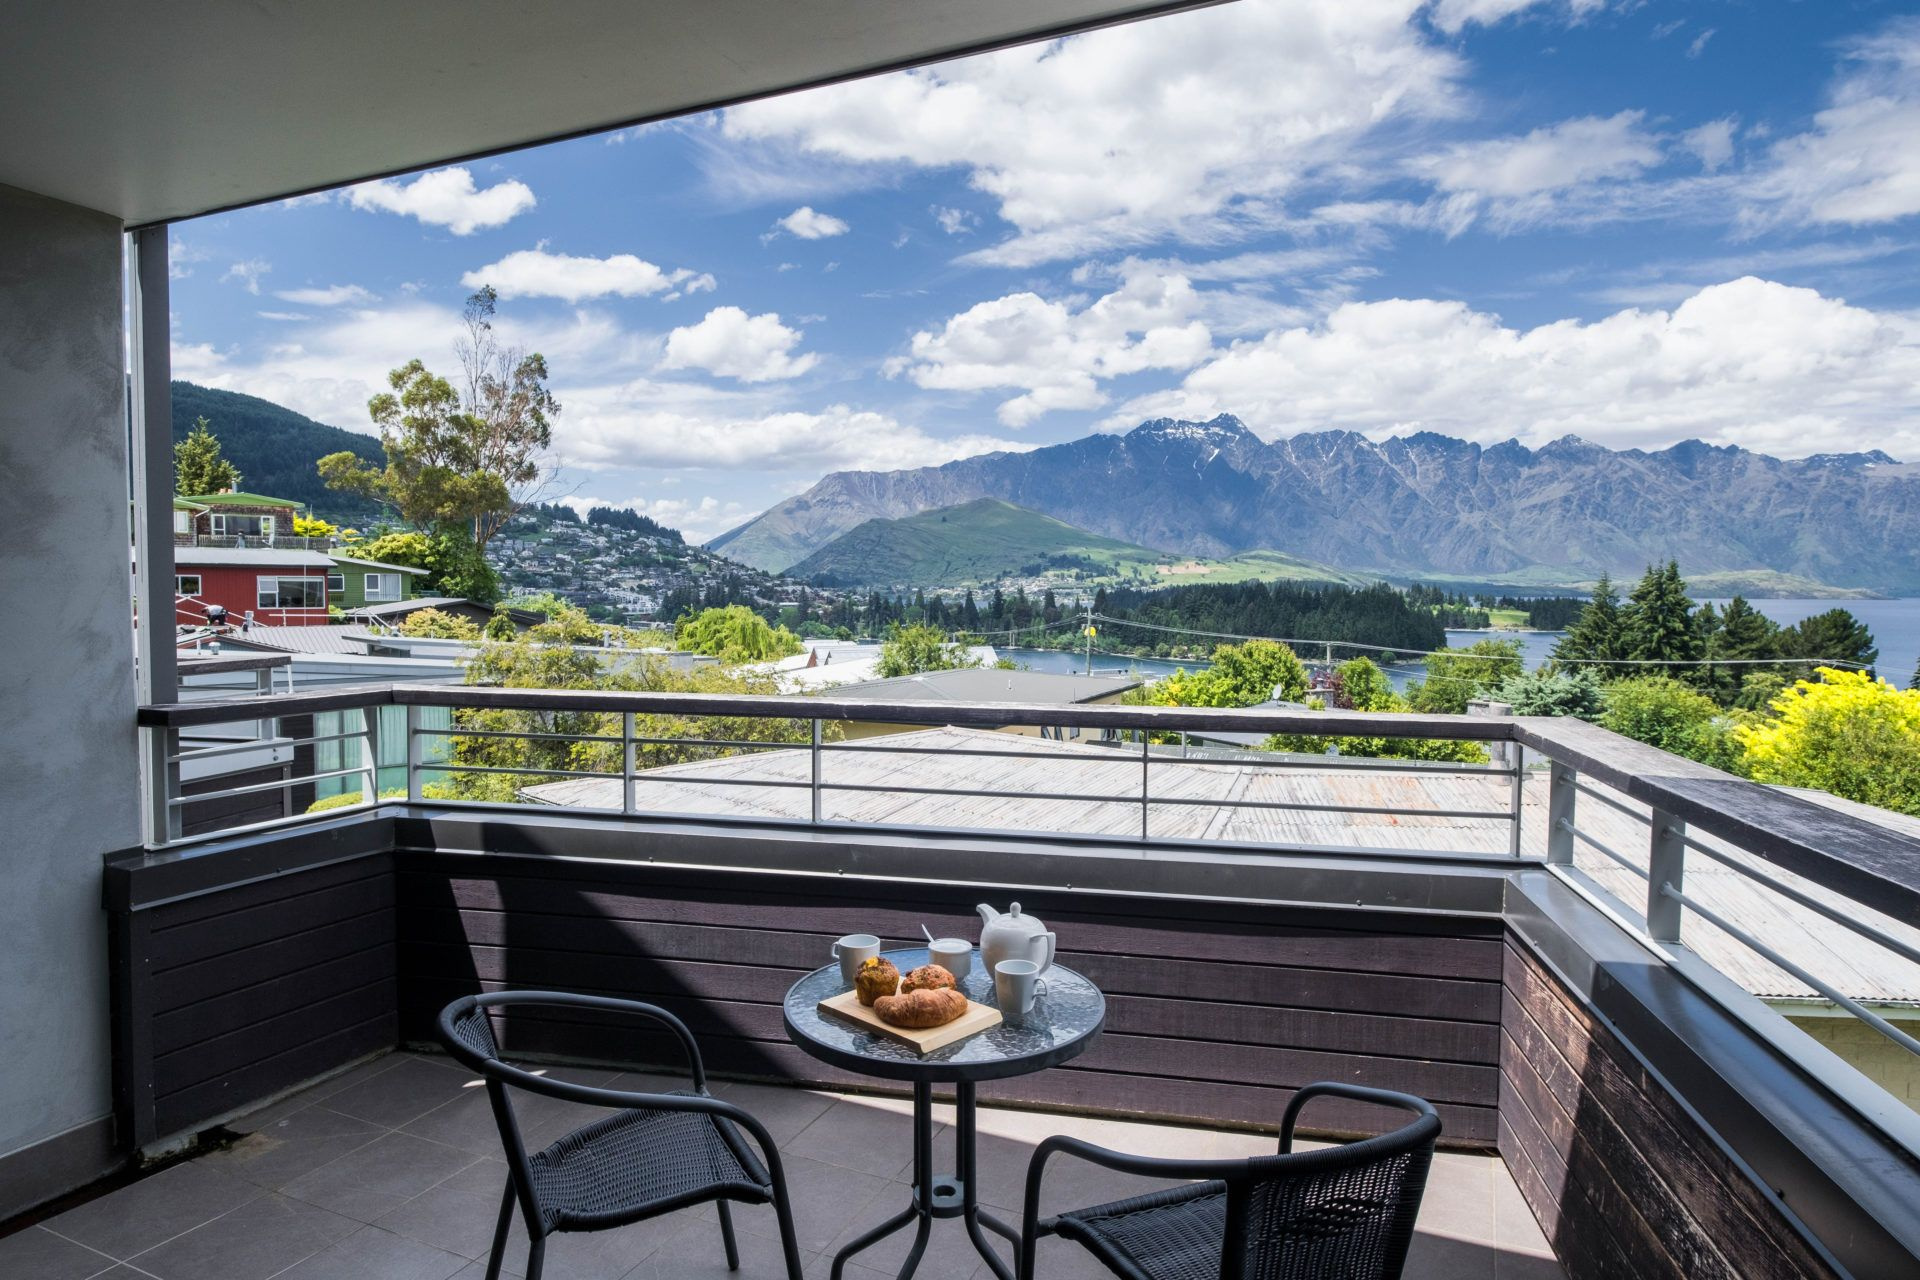 89/2 Scenic Queenstown Apartment